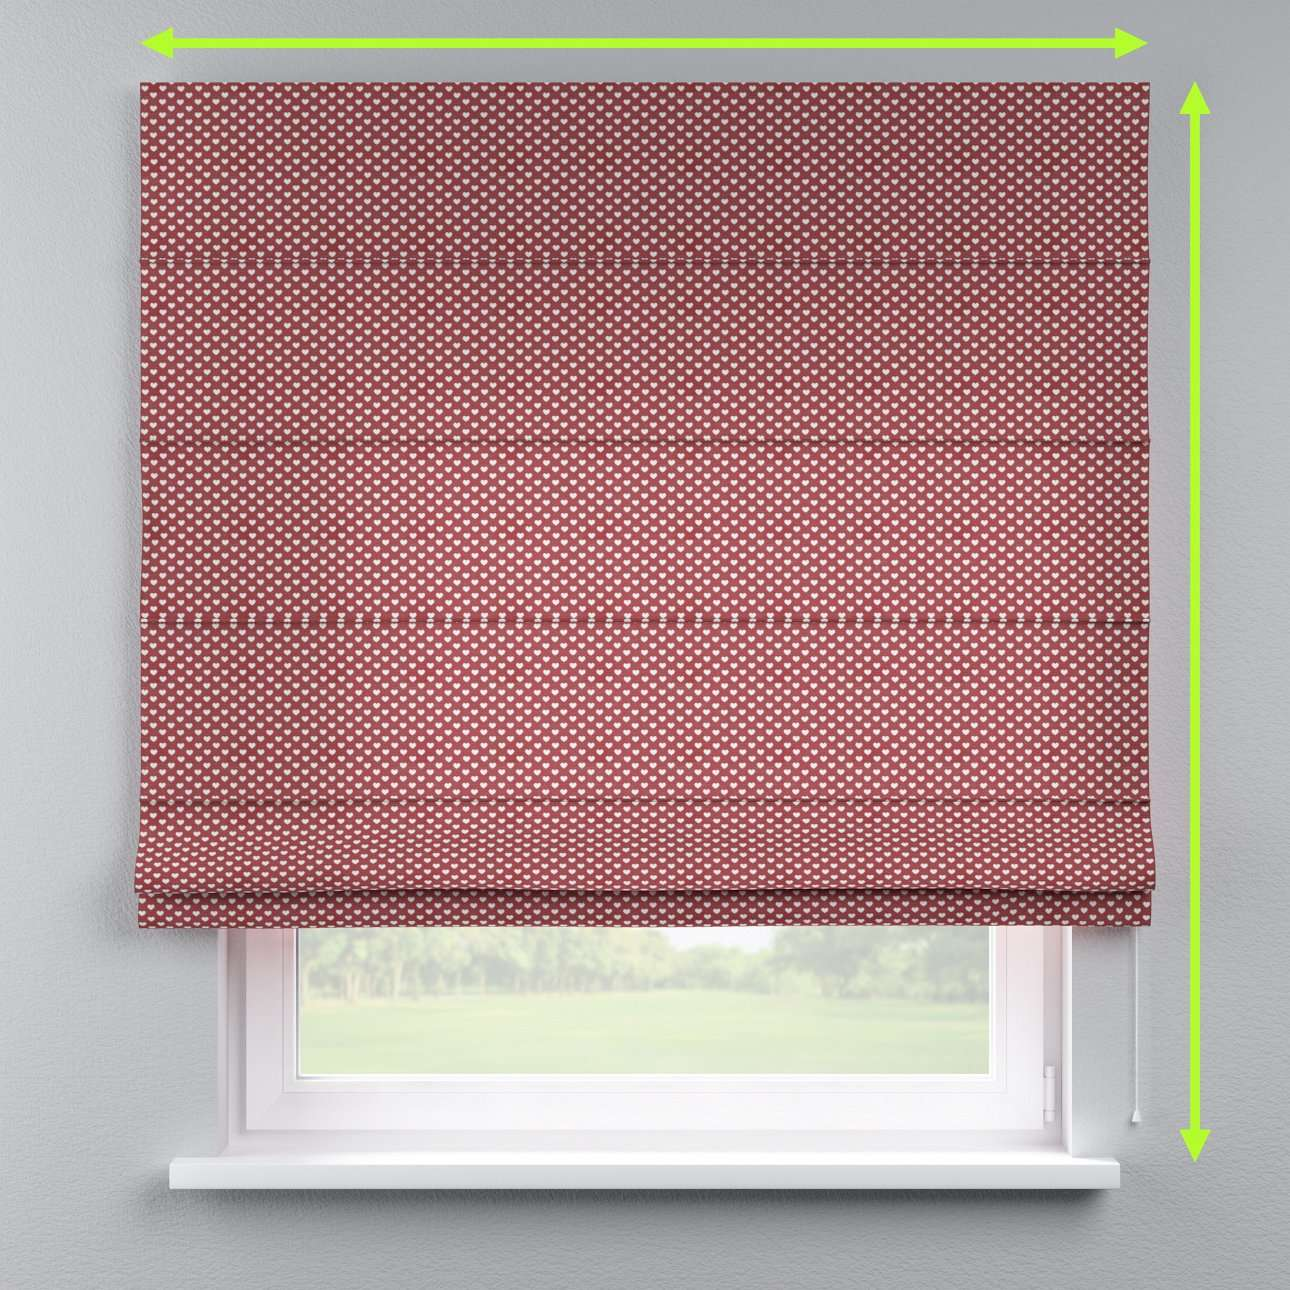 Capri roman blind in collection Nordic, fabric: 630-40